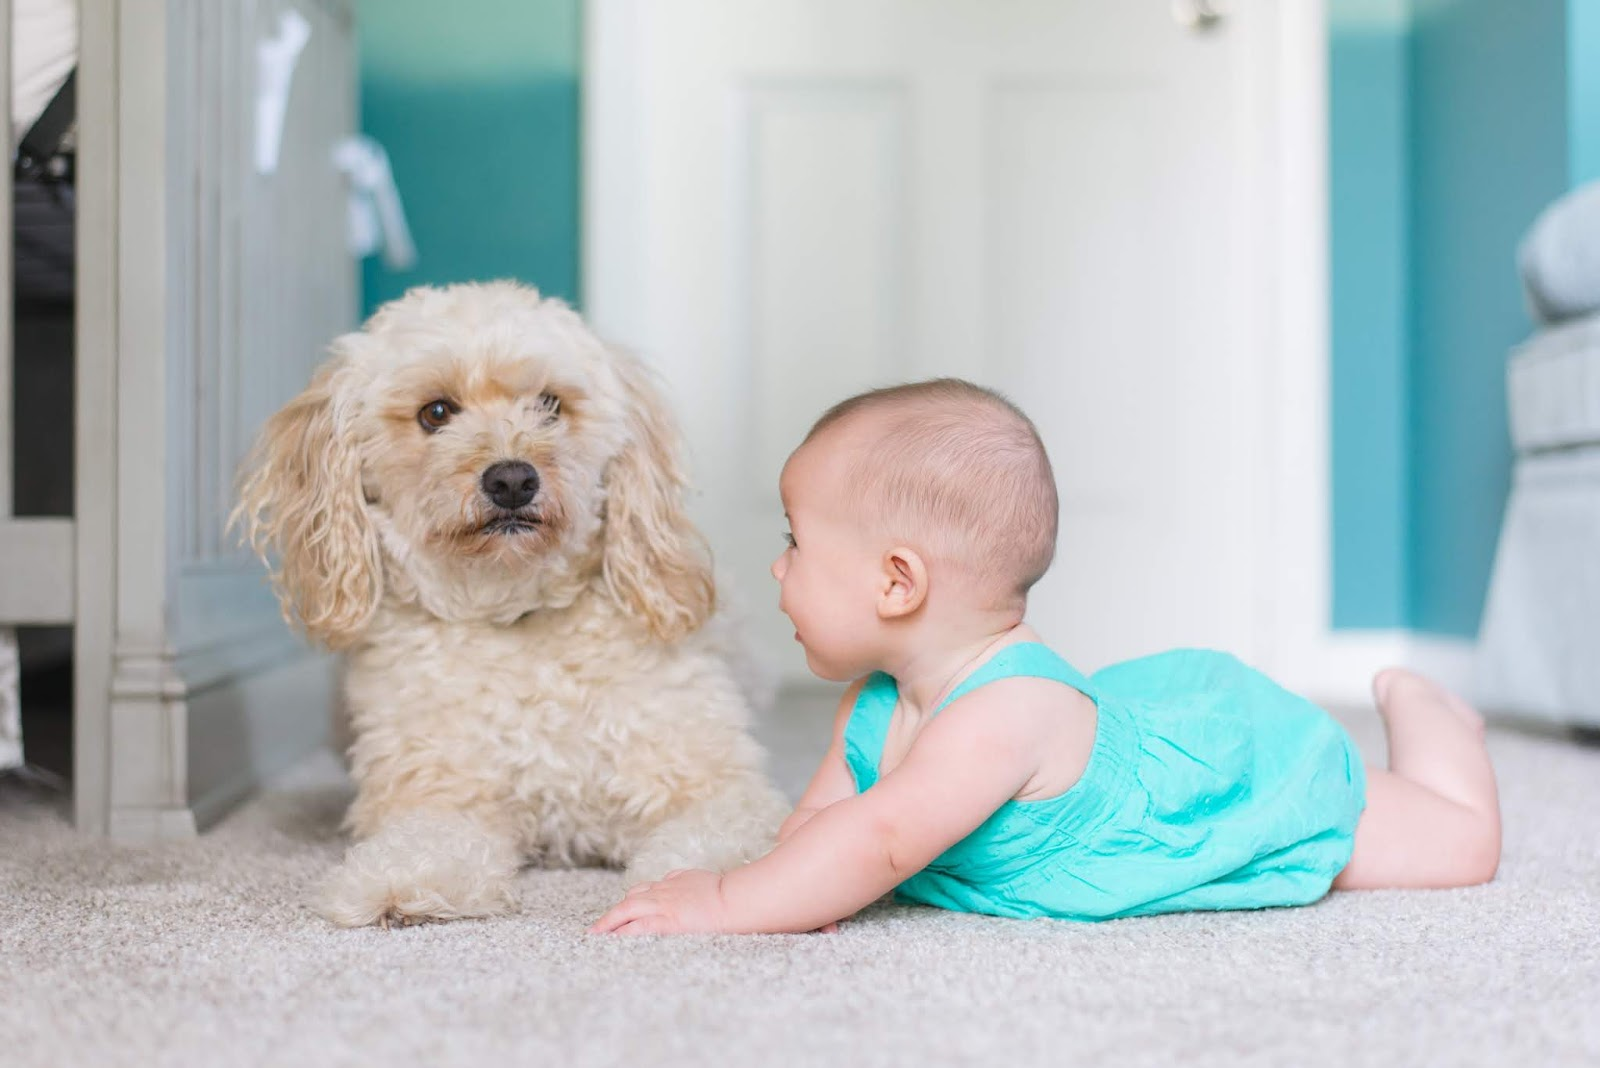 Child and dog on carpet floor